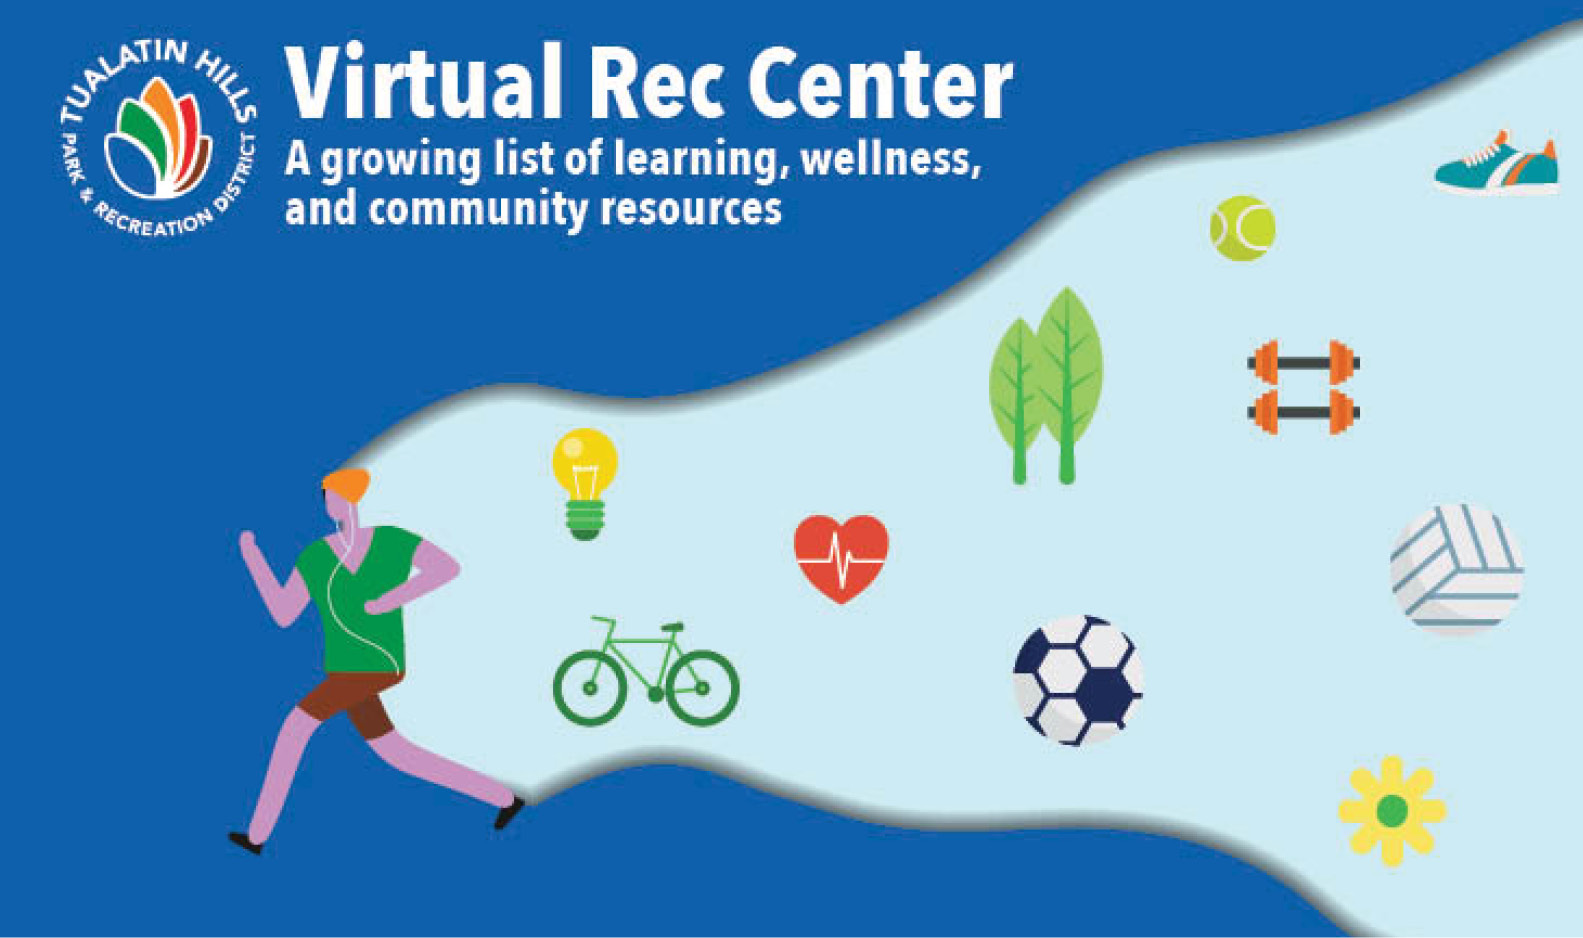 Virtual Rec Center - Fitness, activities, and more!